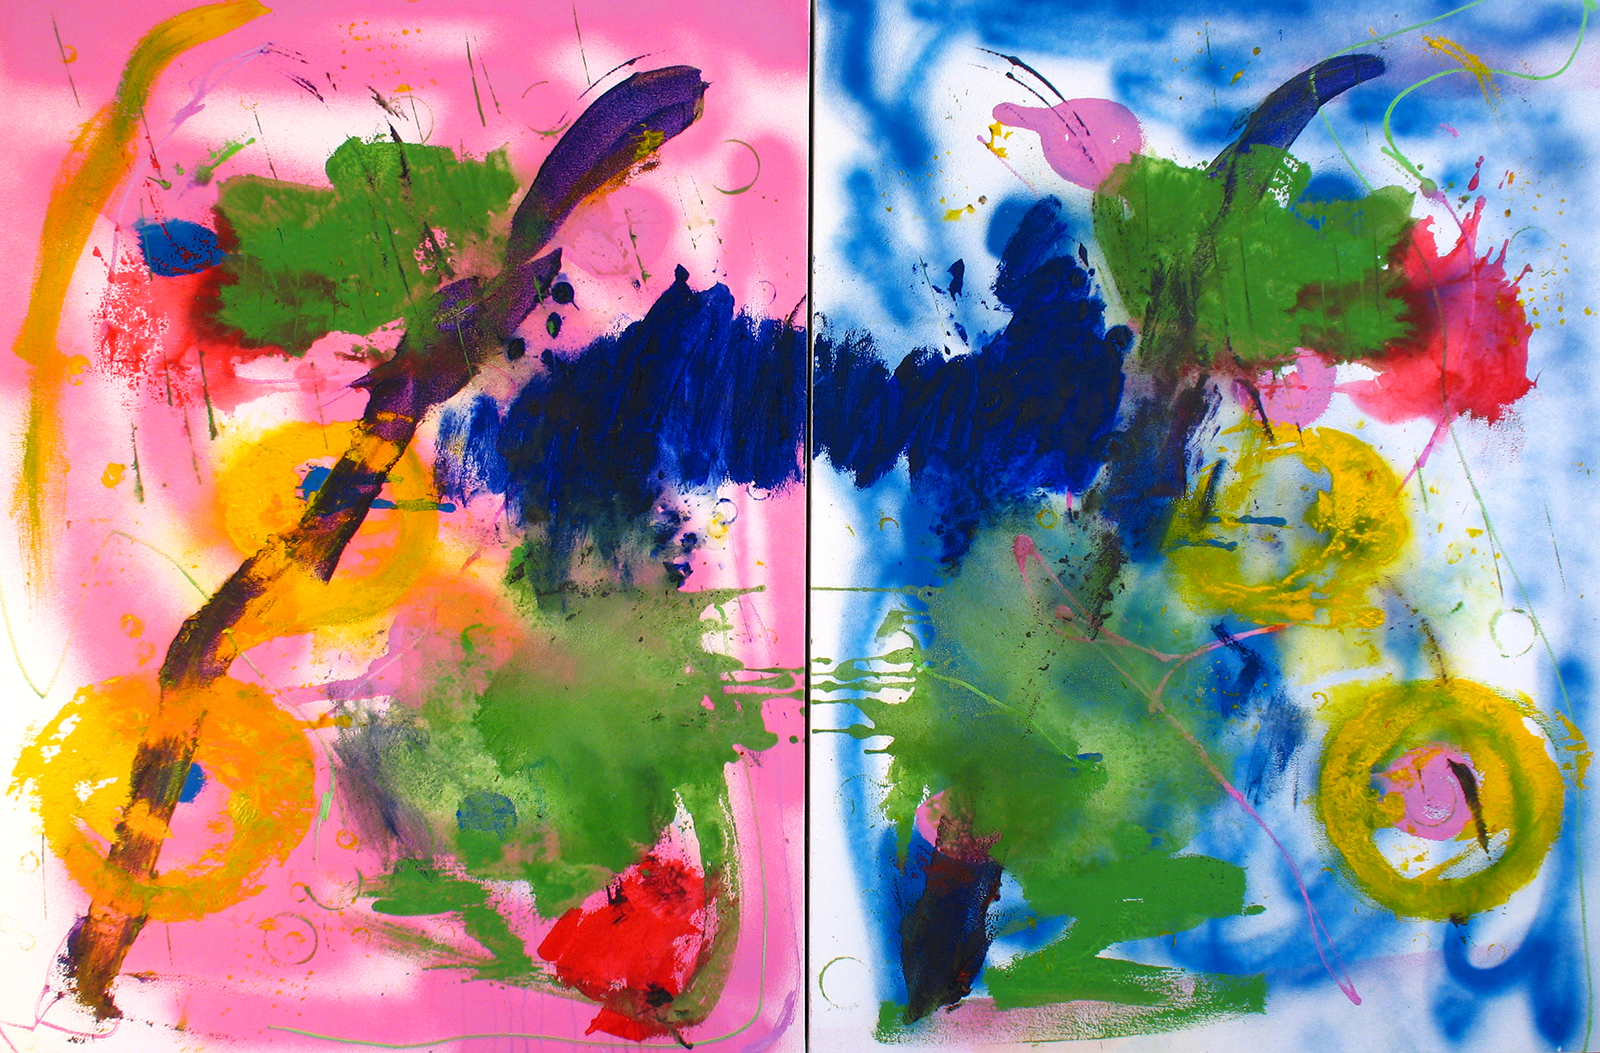 "Jeff Ostergren,  Split Screen  - Oil Paint, Acrylic, Birth Control, Enamel, Flashe, Gouache, Green Superfood, Luvox, Mirapex, Blkwater Energy Drink, Purell Hand Sanitizer, Sea Salt, Scope, Sharpie Oil Markers, and Viagra on two canvases - 40"" x 60"" - 2017."